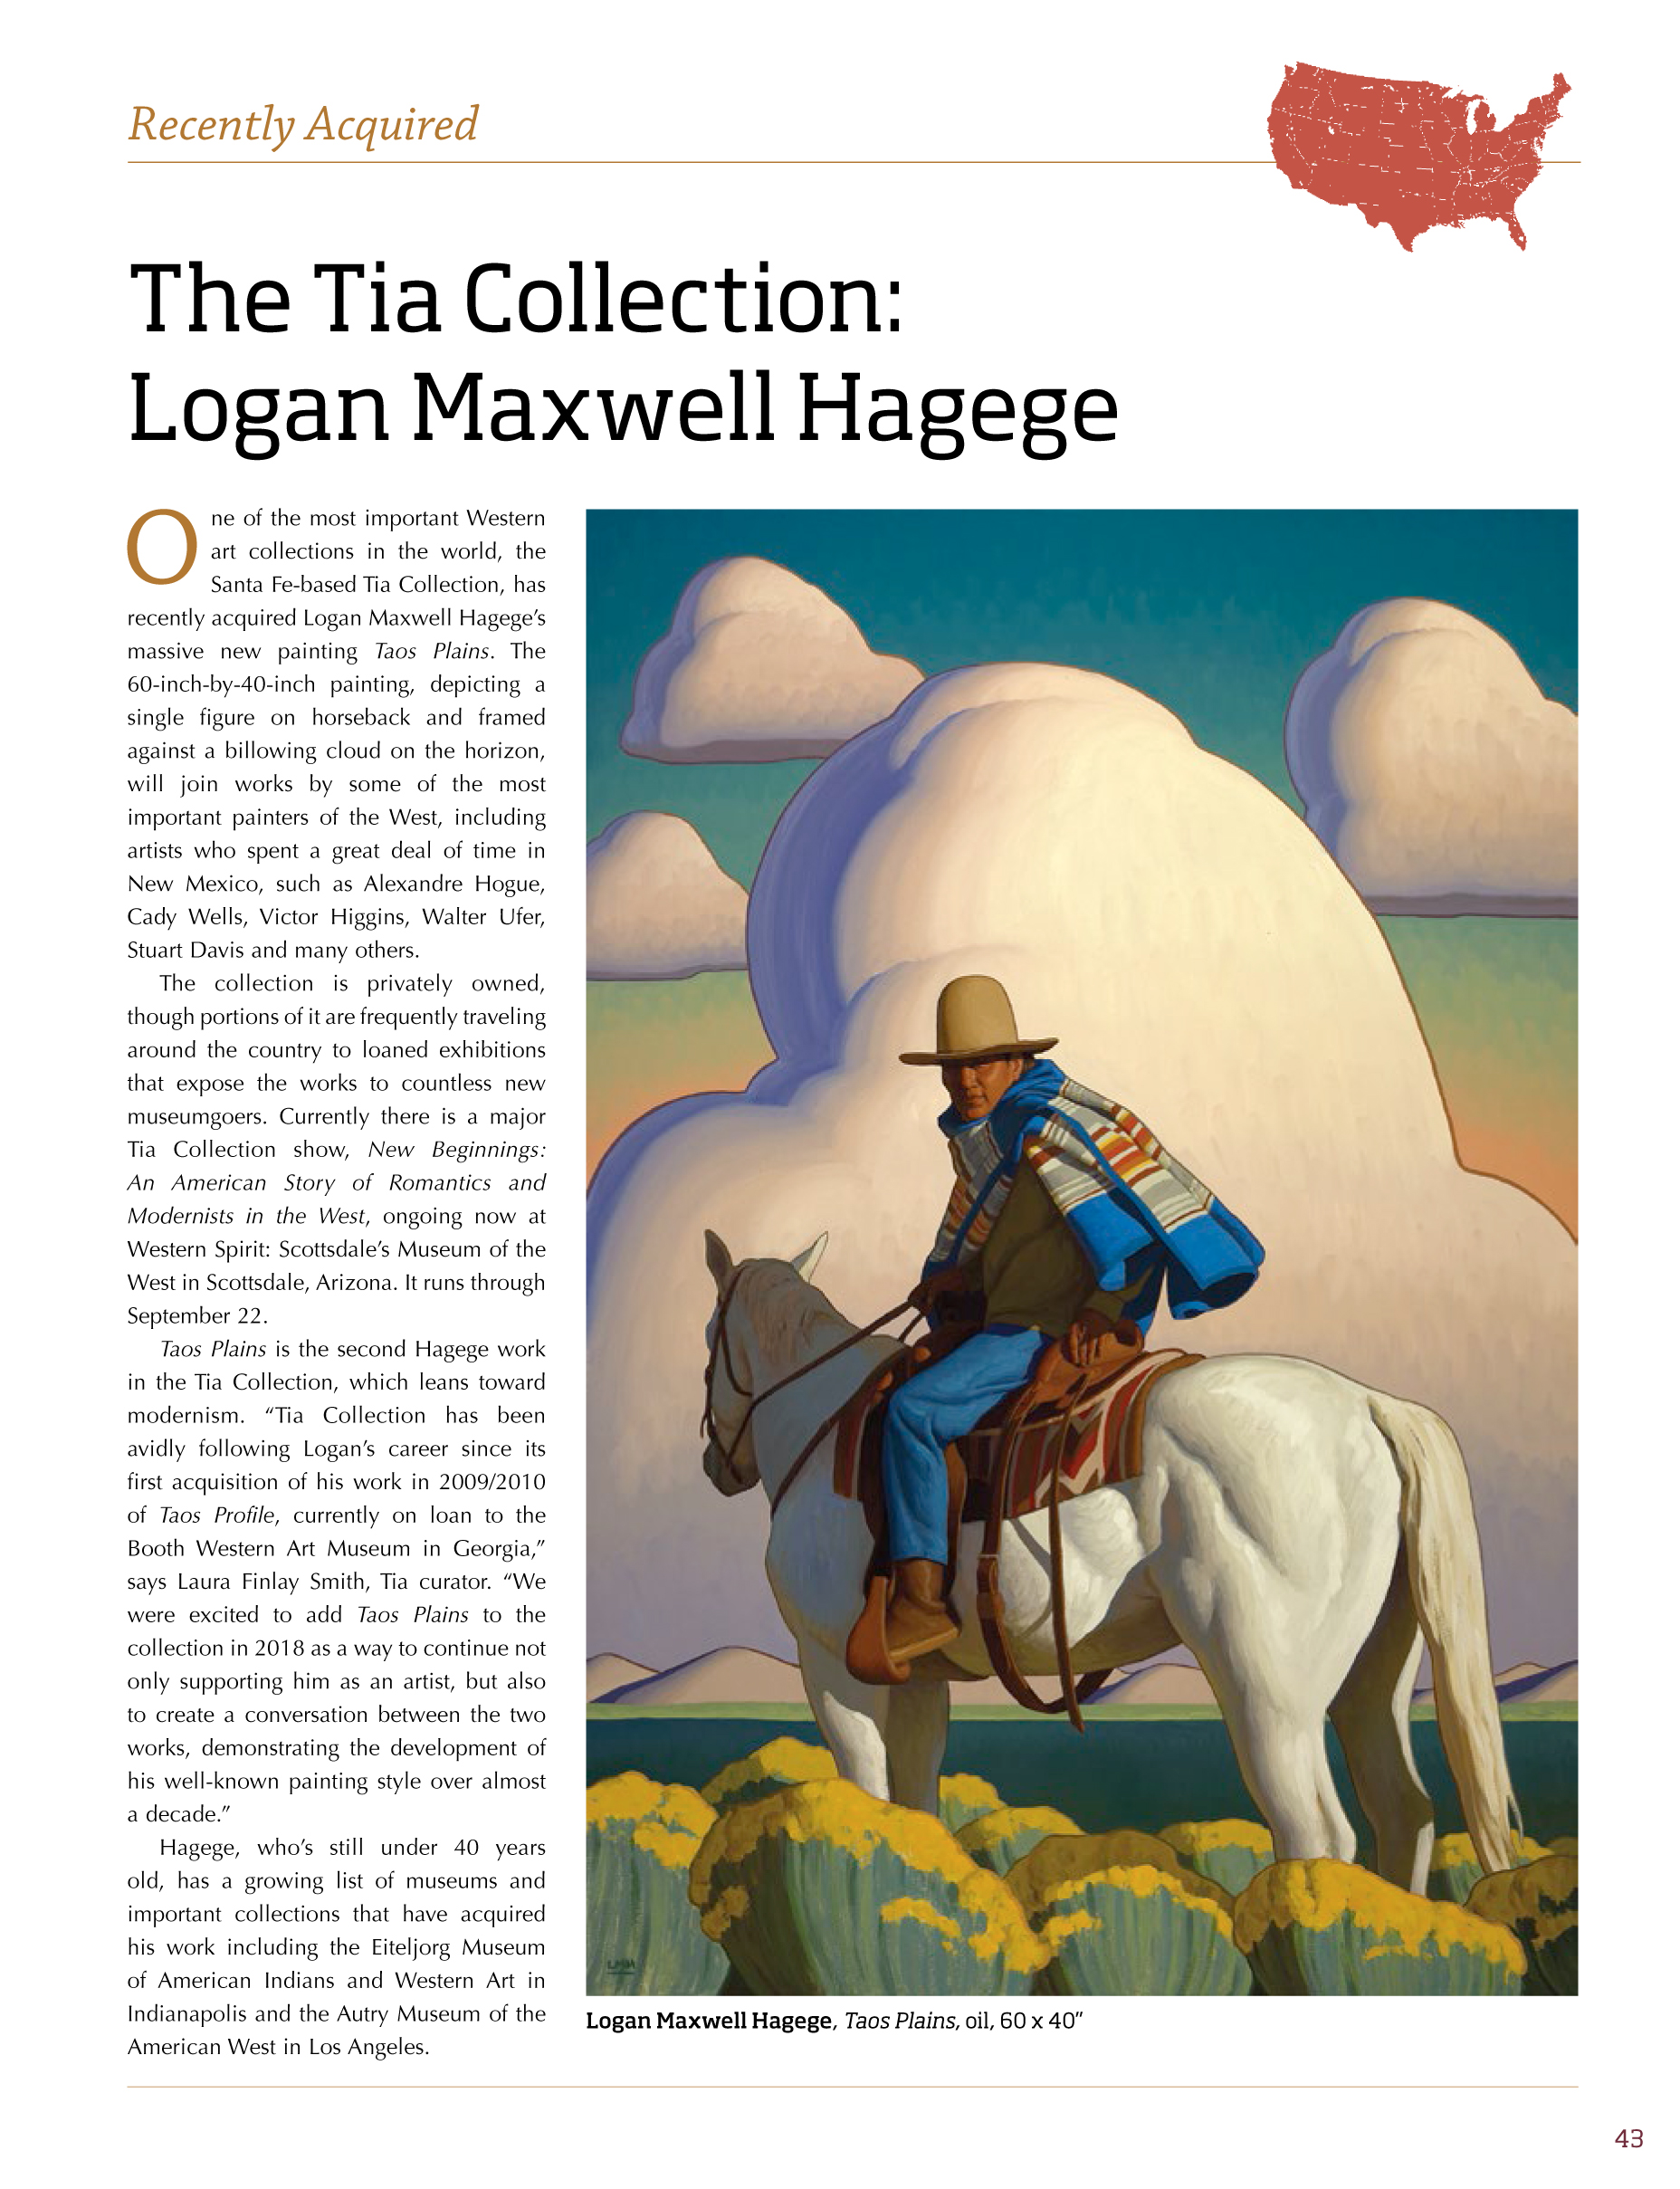 ARTICLE FEATURED IN WESTERN ART COLLECTION MAGAZINE APRIL 2019